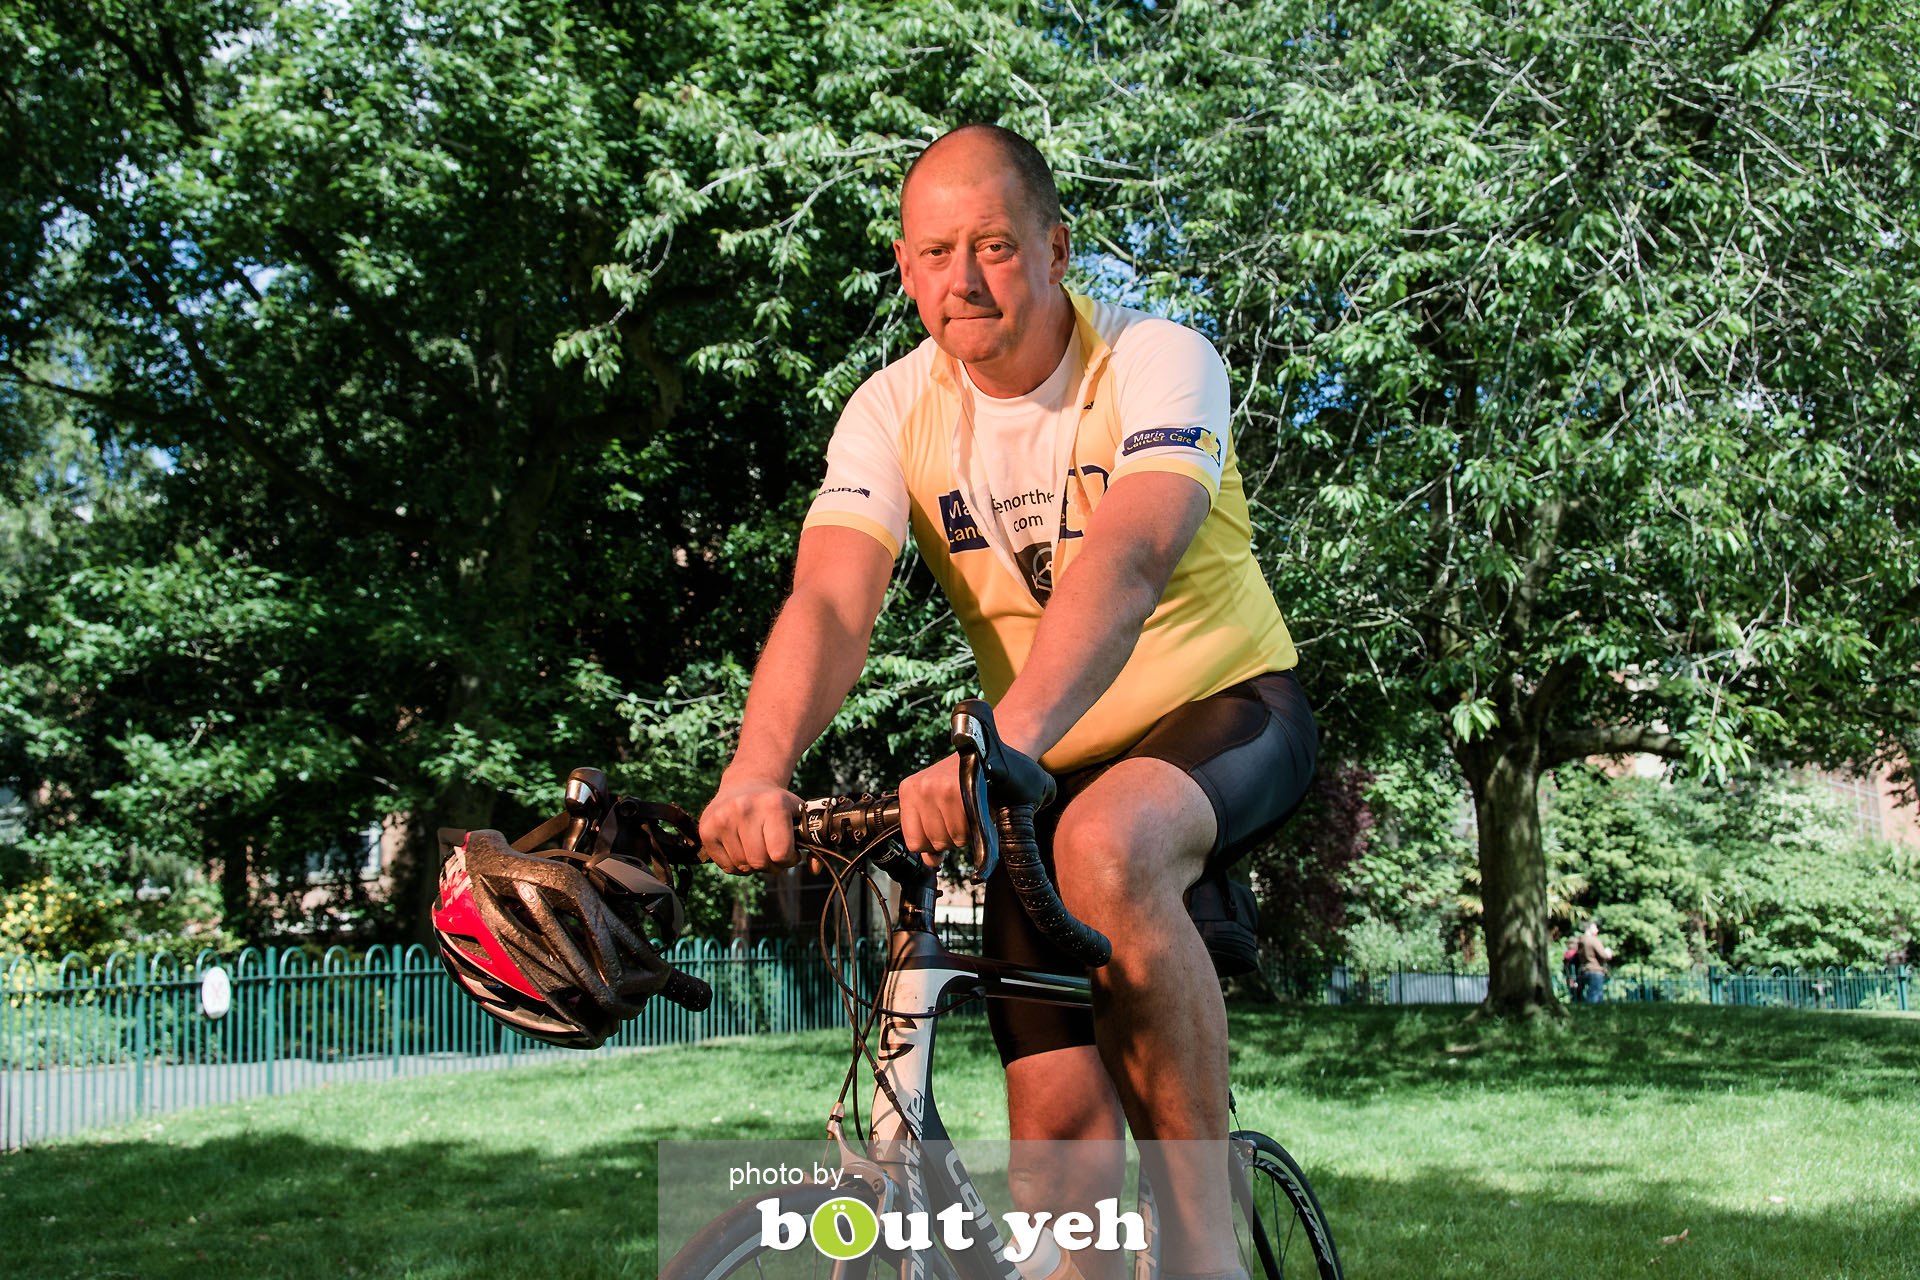 Hugo, of Bed and Bike Cycling Tours, at Botanic Gardens, Belfast, Northern Ireland - photo 7122.